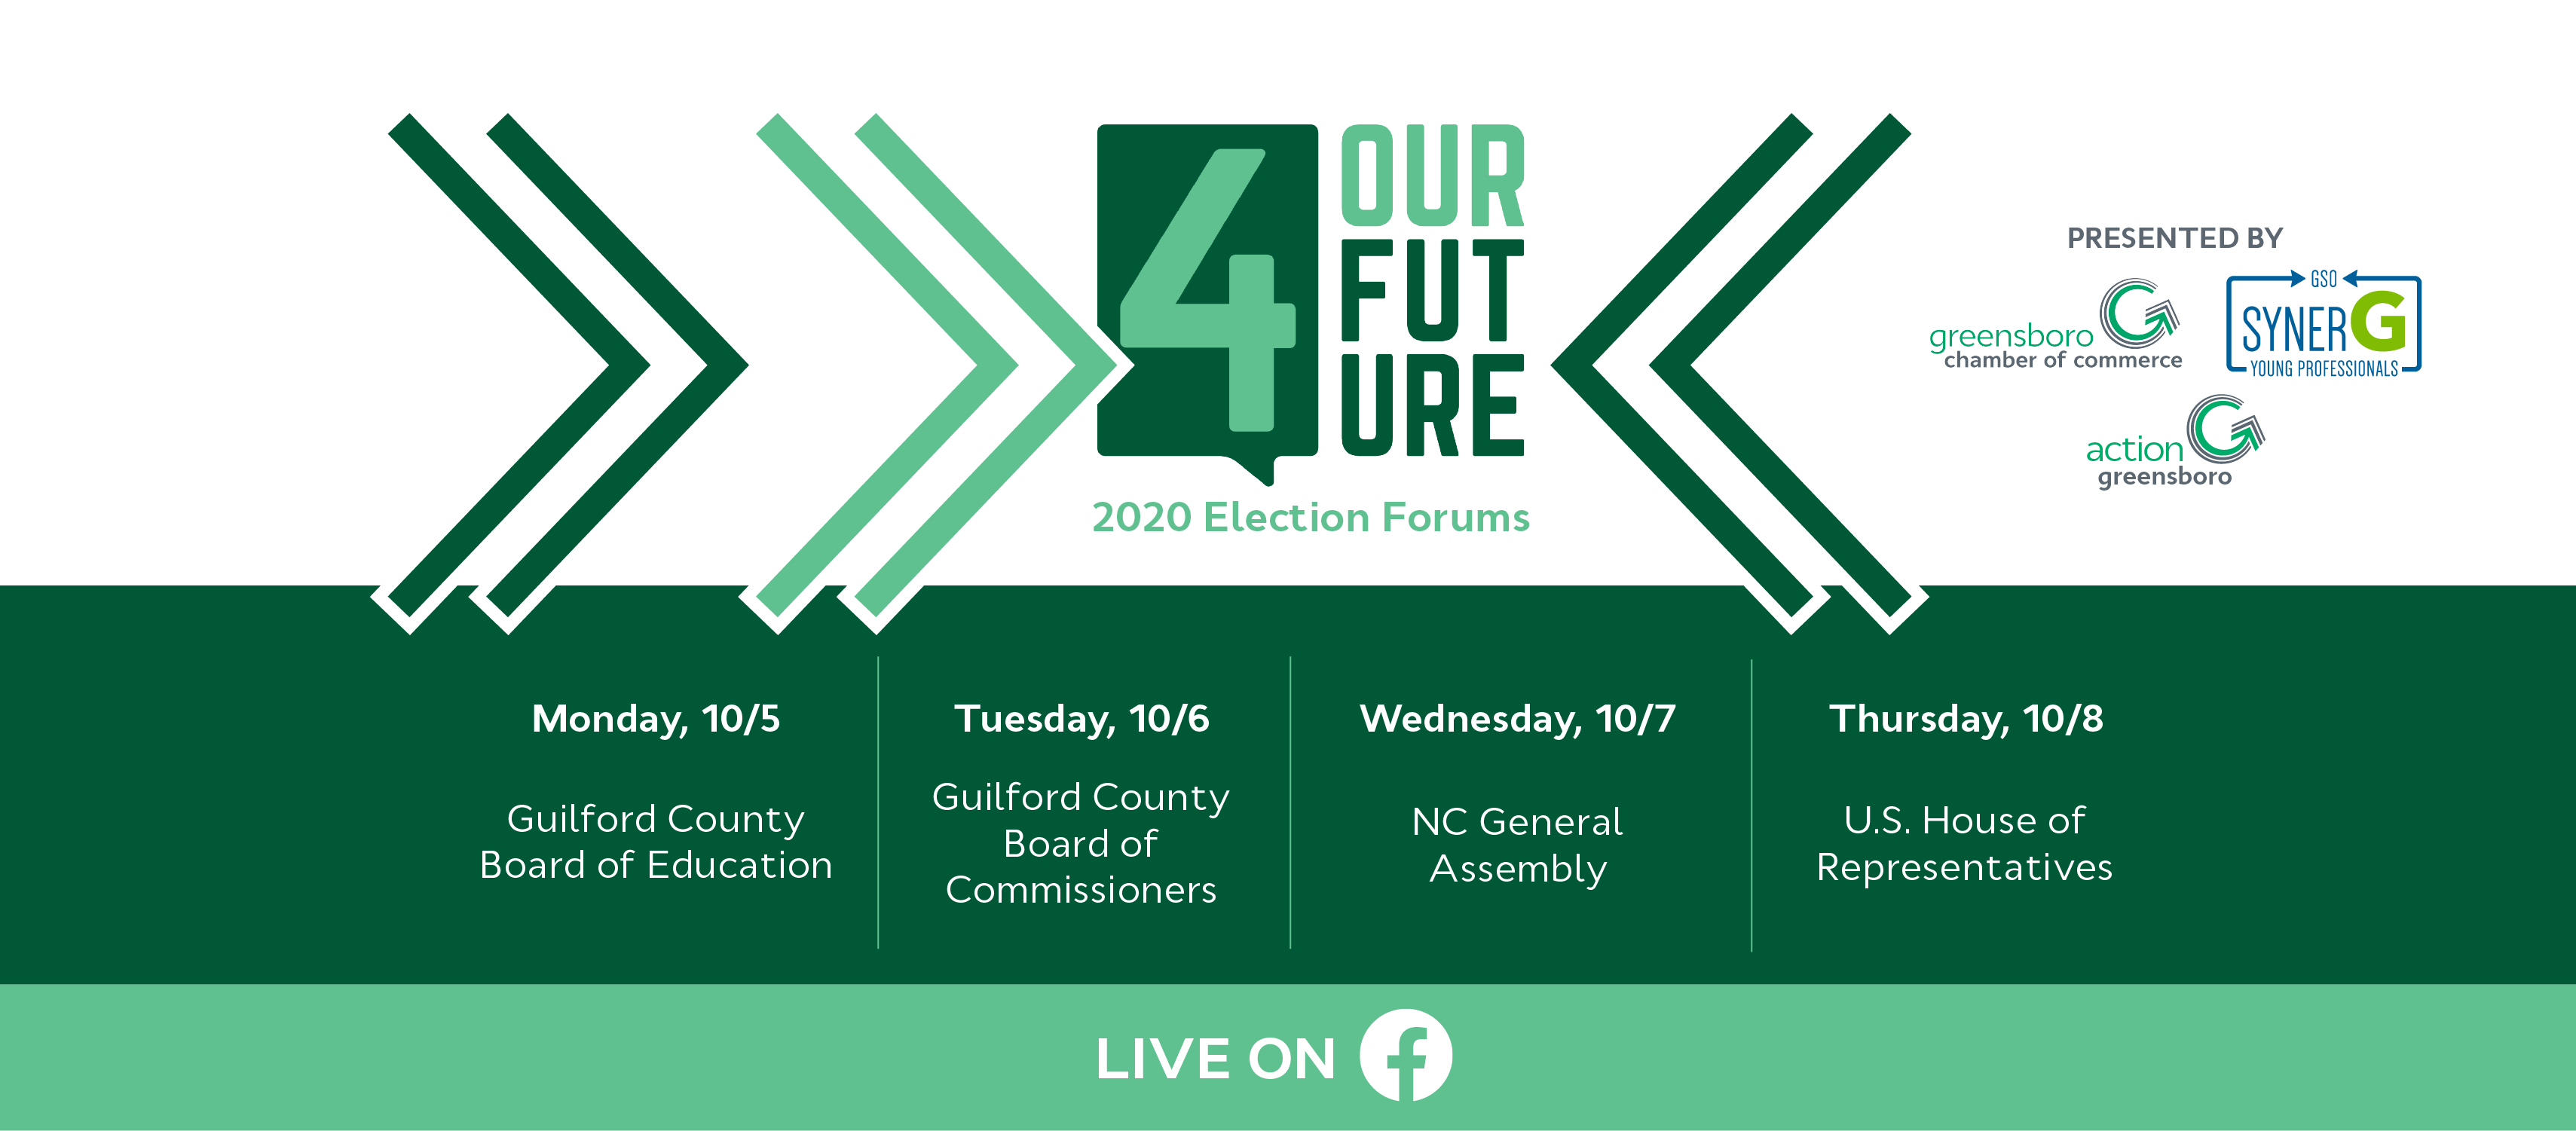 2020 Election Forums